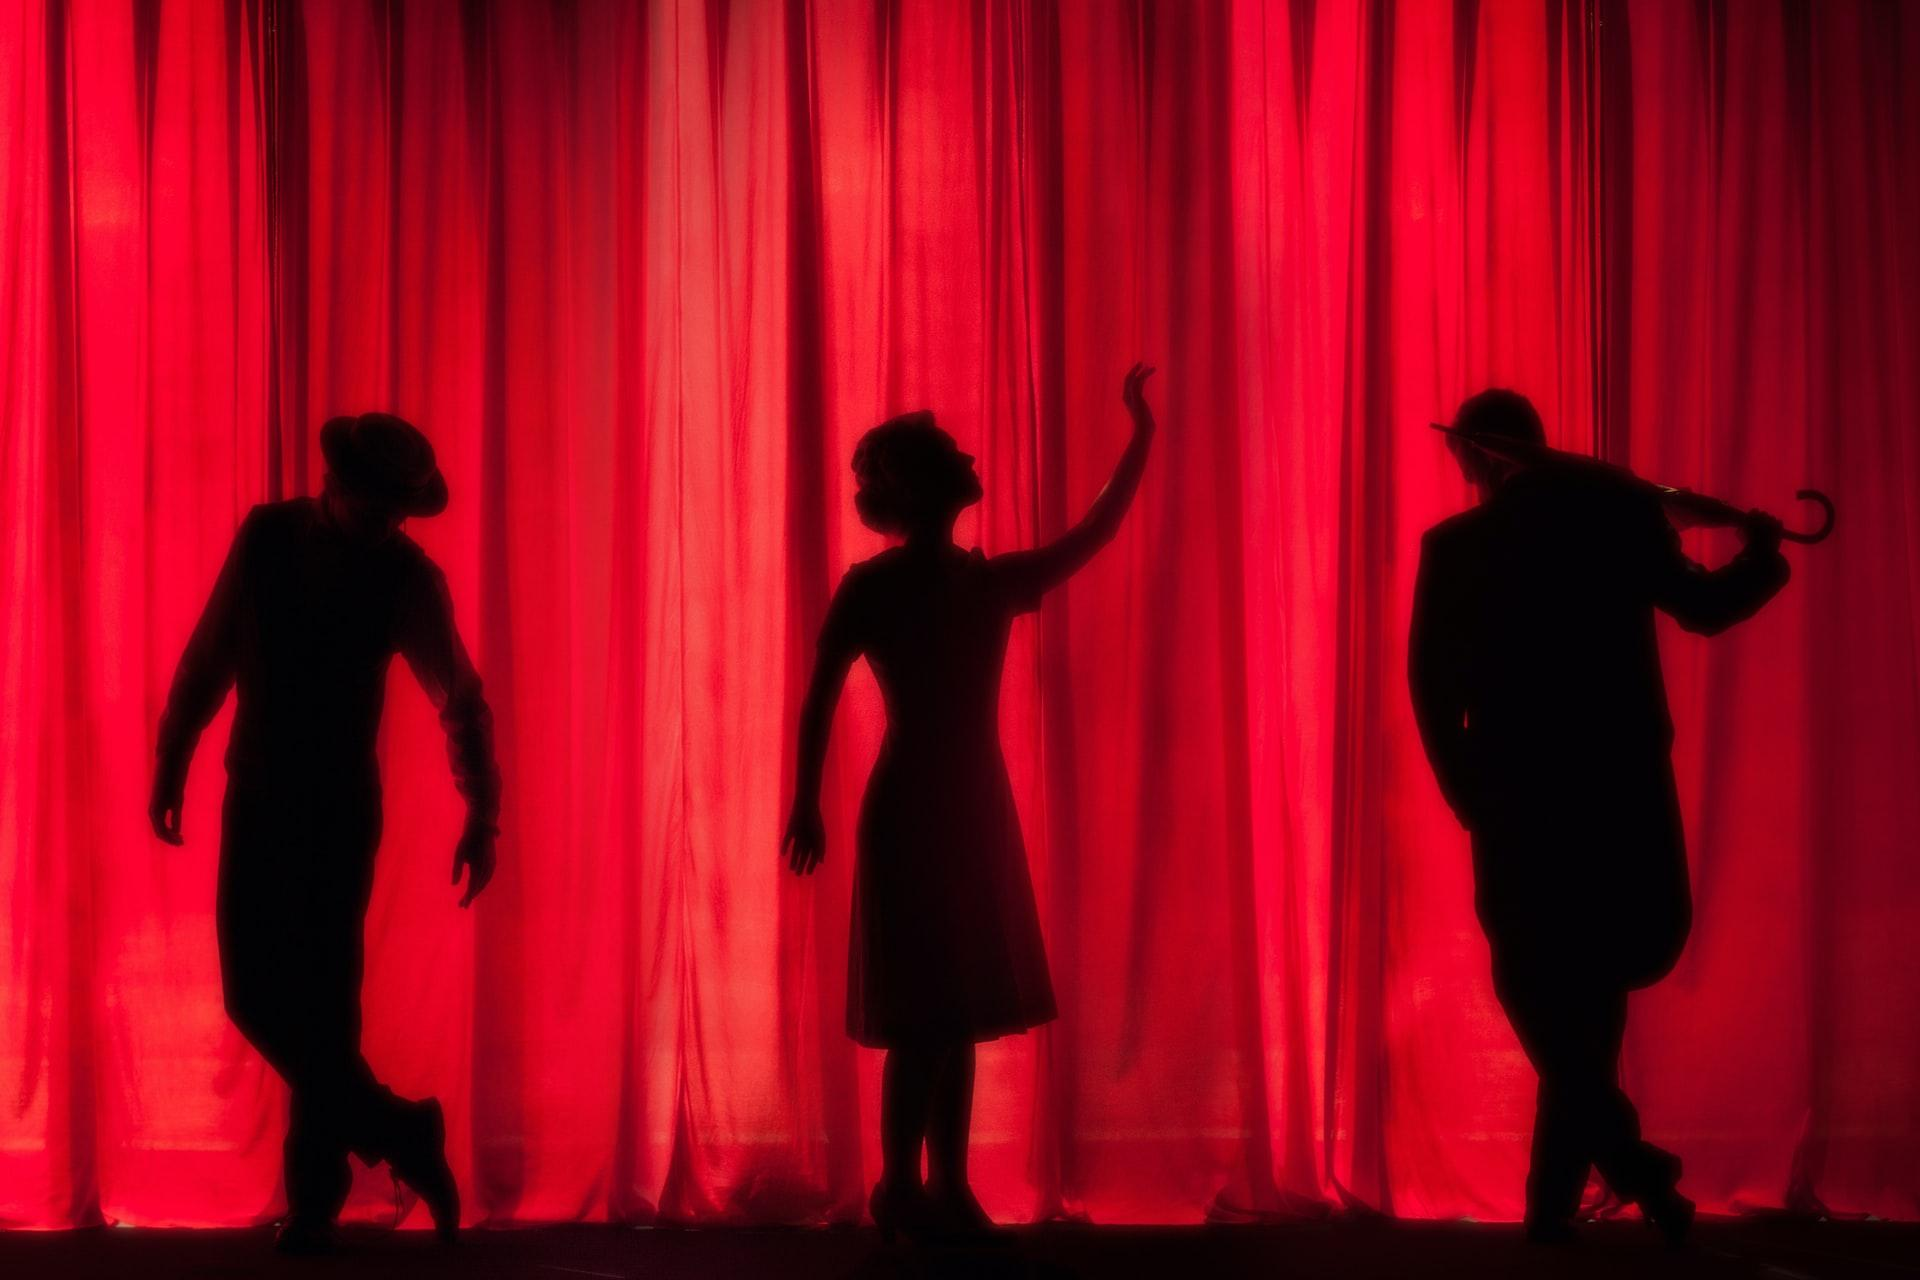 sihouette of a woman dancing with two male silhouettes on either side of her. they are behind a red, backlit stage curtain